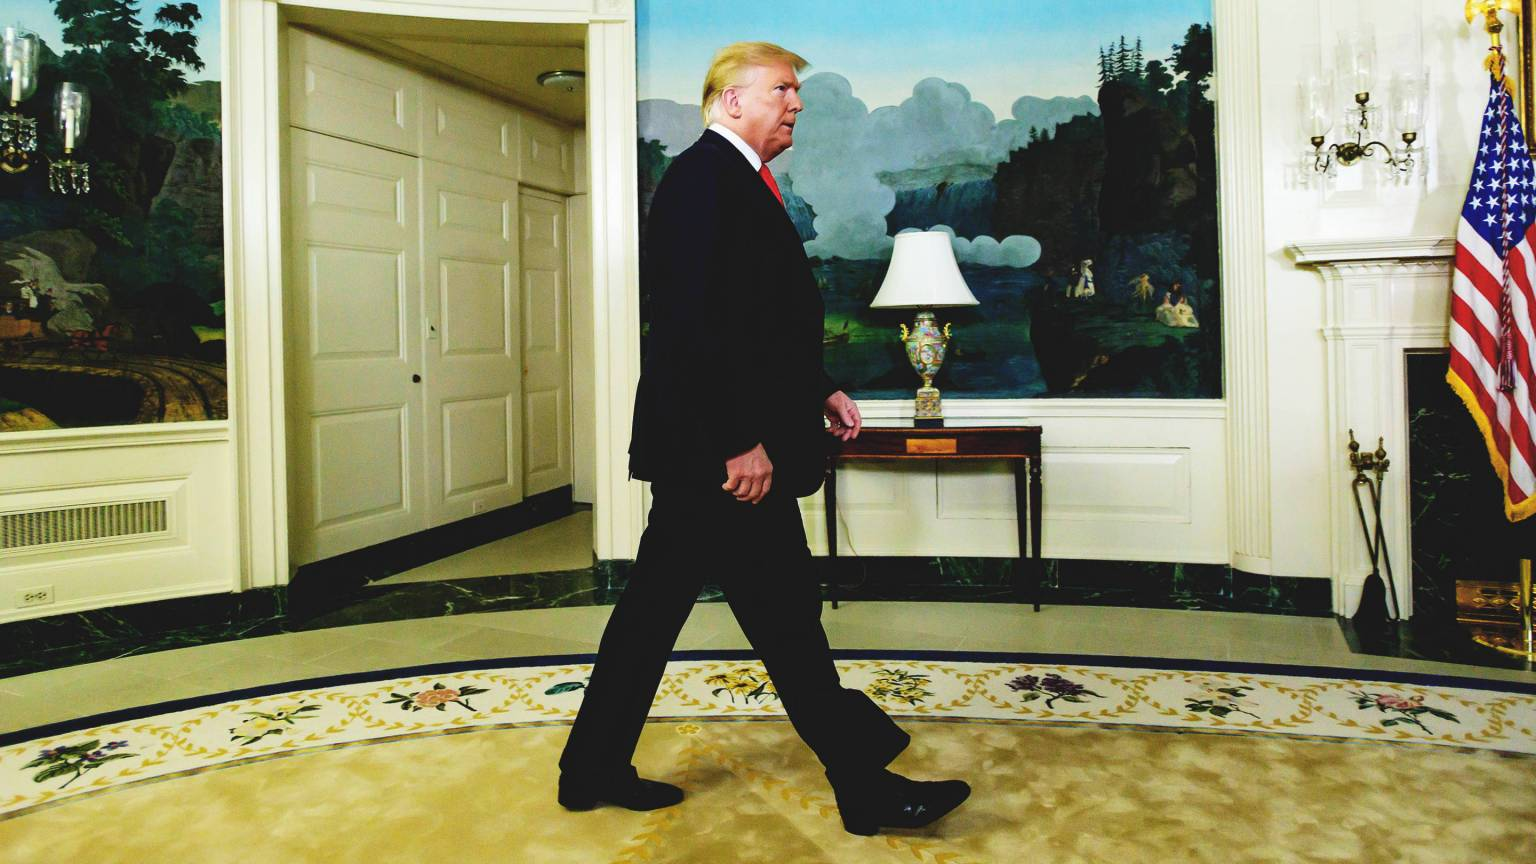 A Quite Place: Trump's Confidence At Odds With His Administration